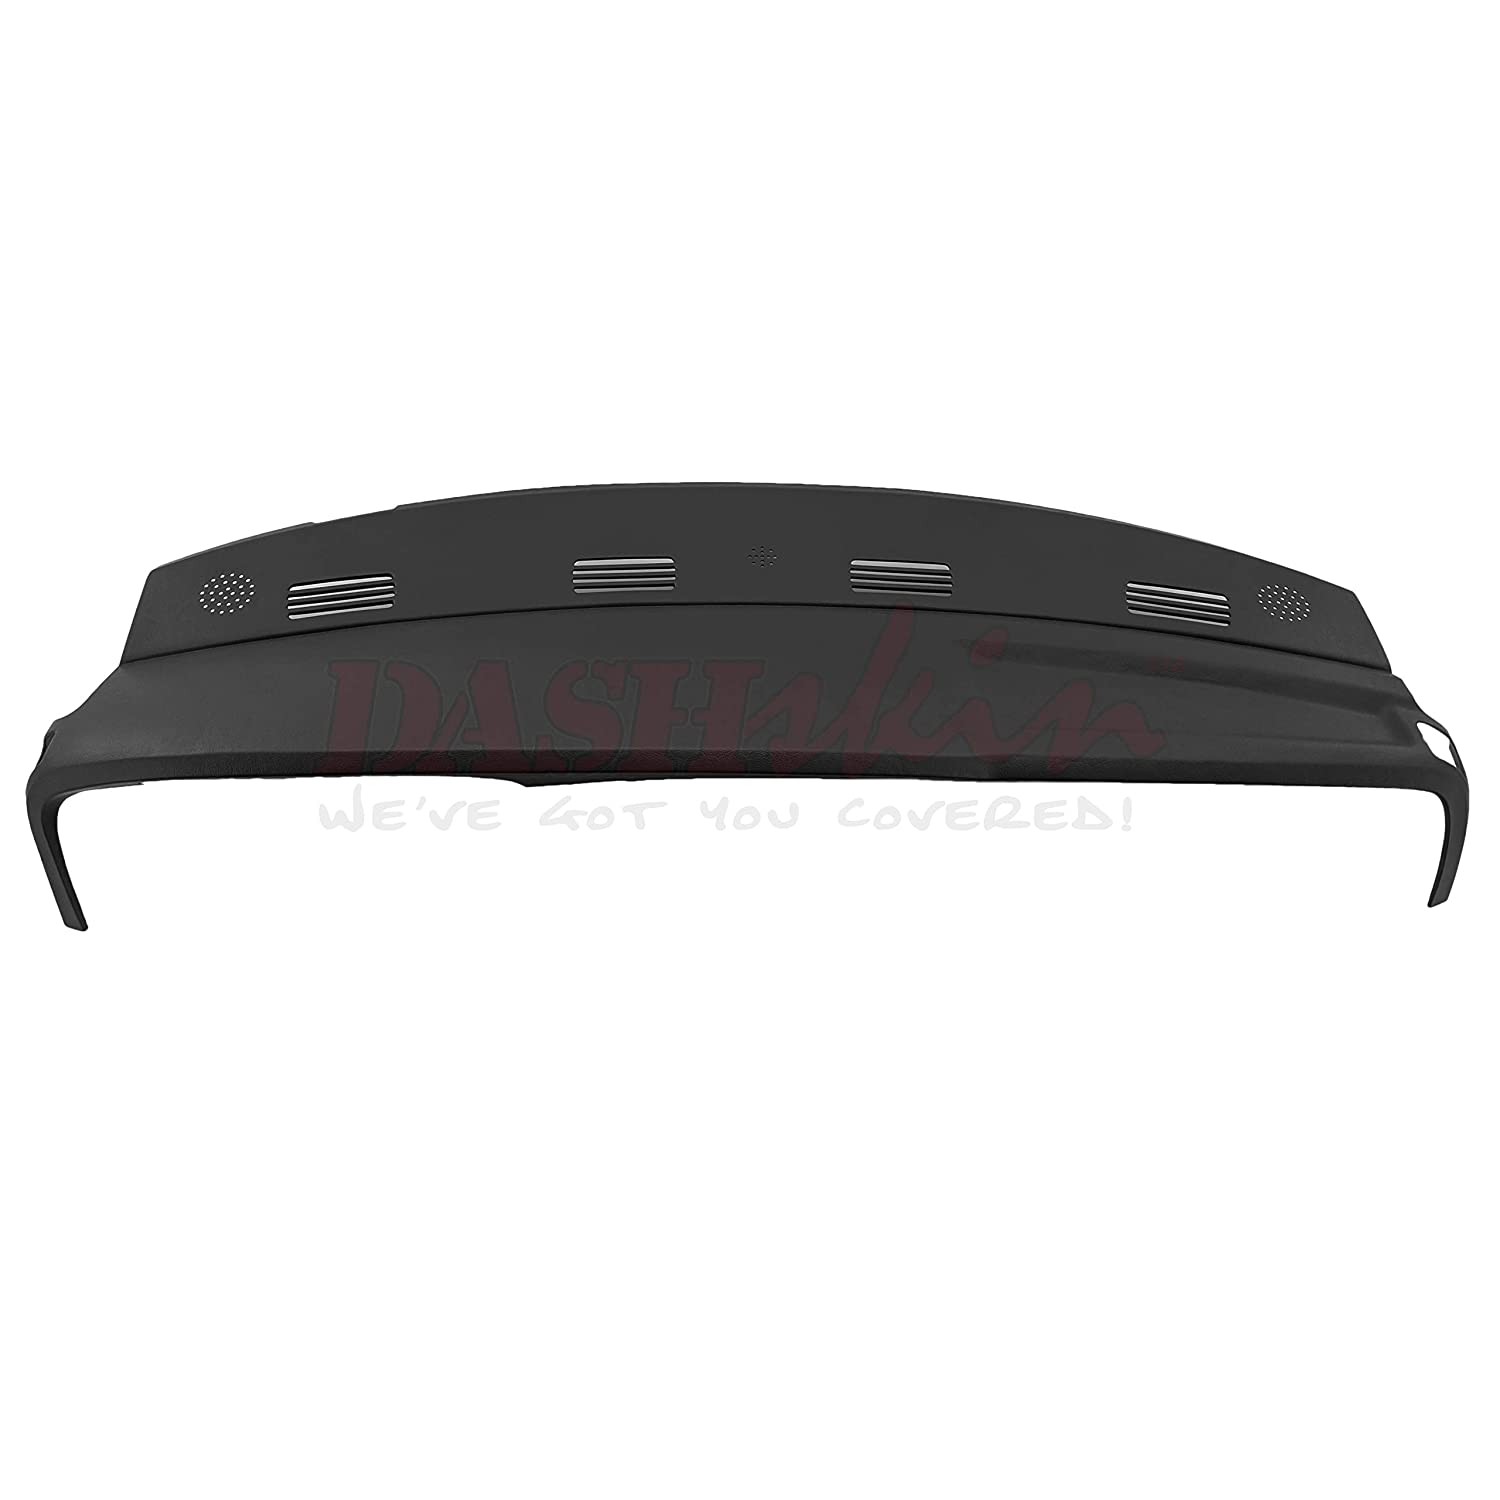 DashSkin Molded Dash Cover Compatible with 02-05 Dodge Ram in Black